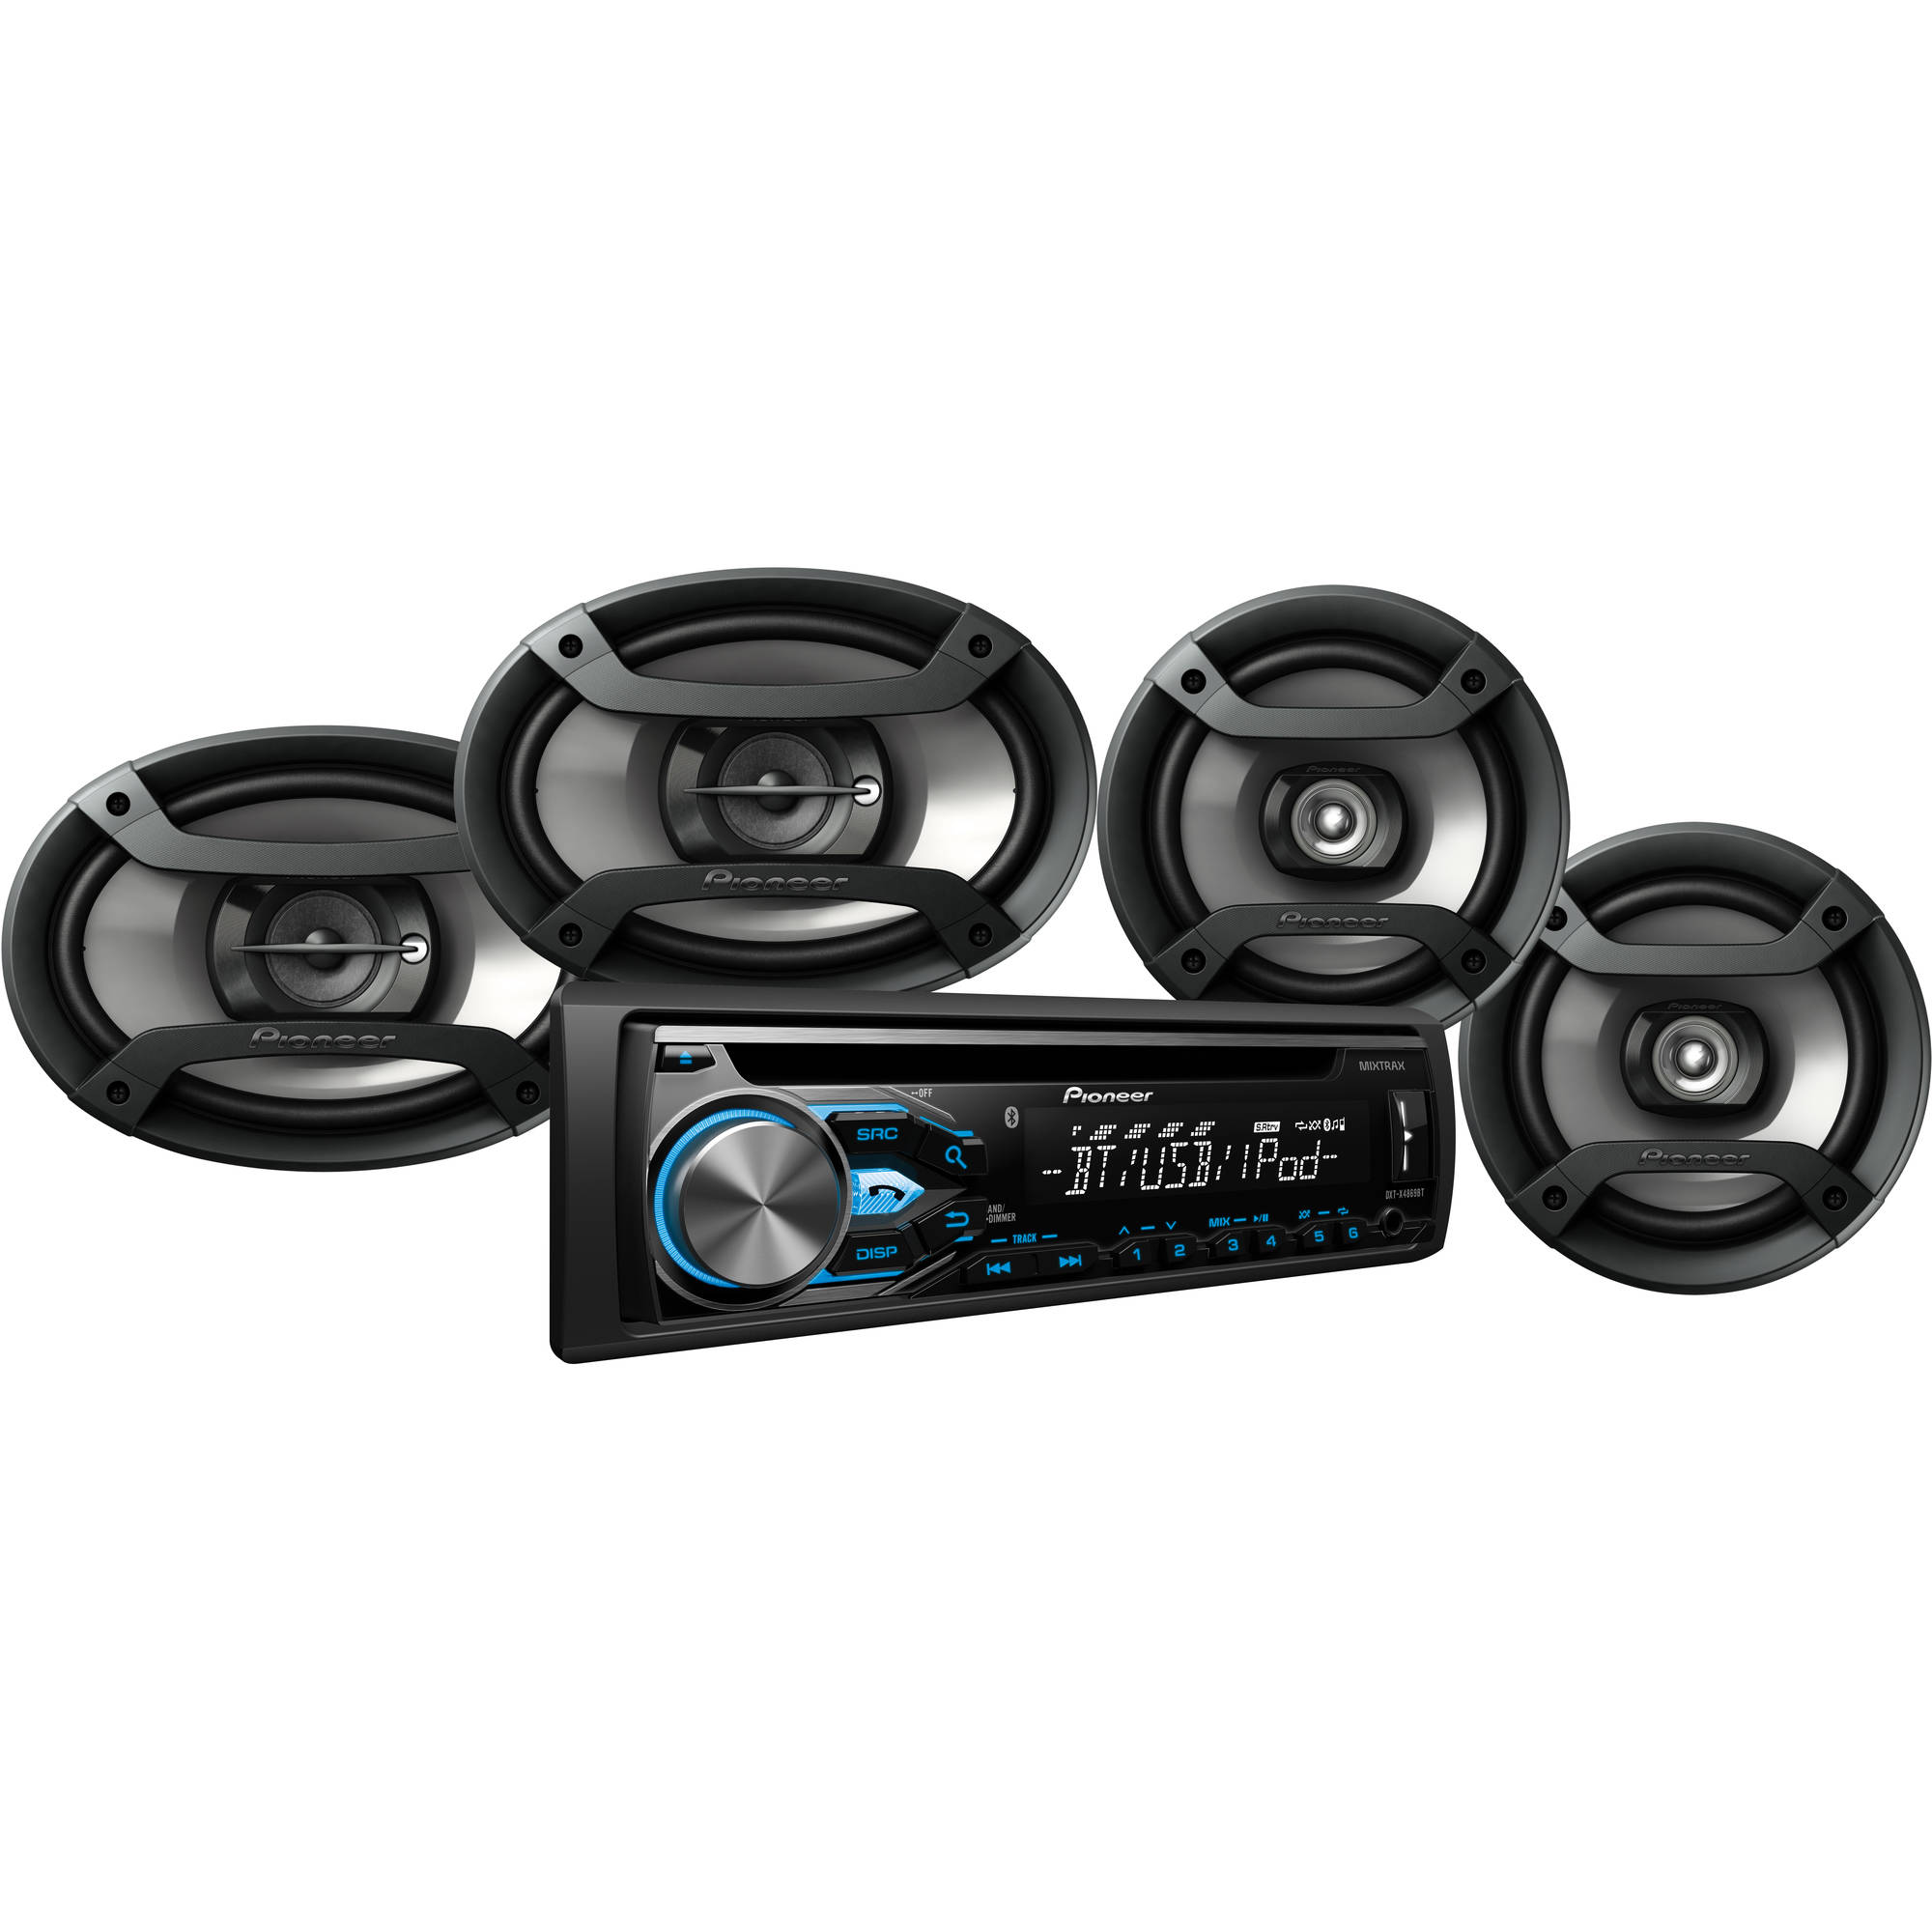 "Pioneer DXT-X4869BT Bluetooth CD Car Stereo Receiver Bundle with Two 6.5"" Speakers and Two 6"" x 9"" Speakers, w/ Remote"